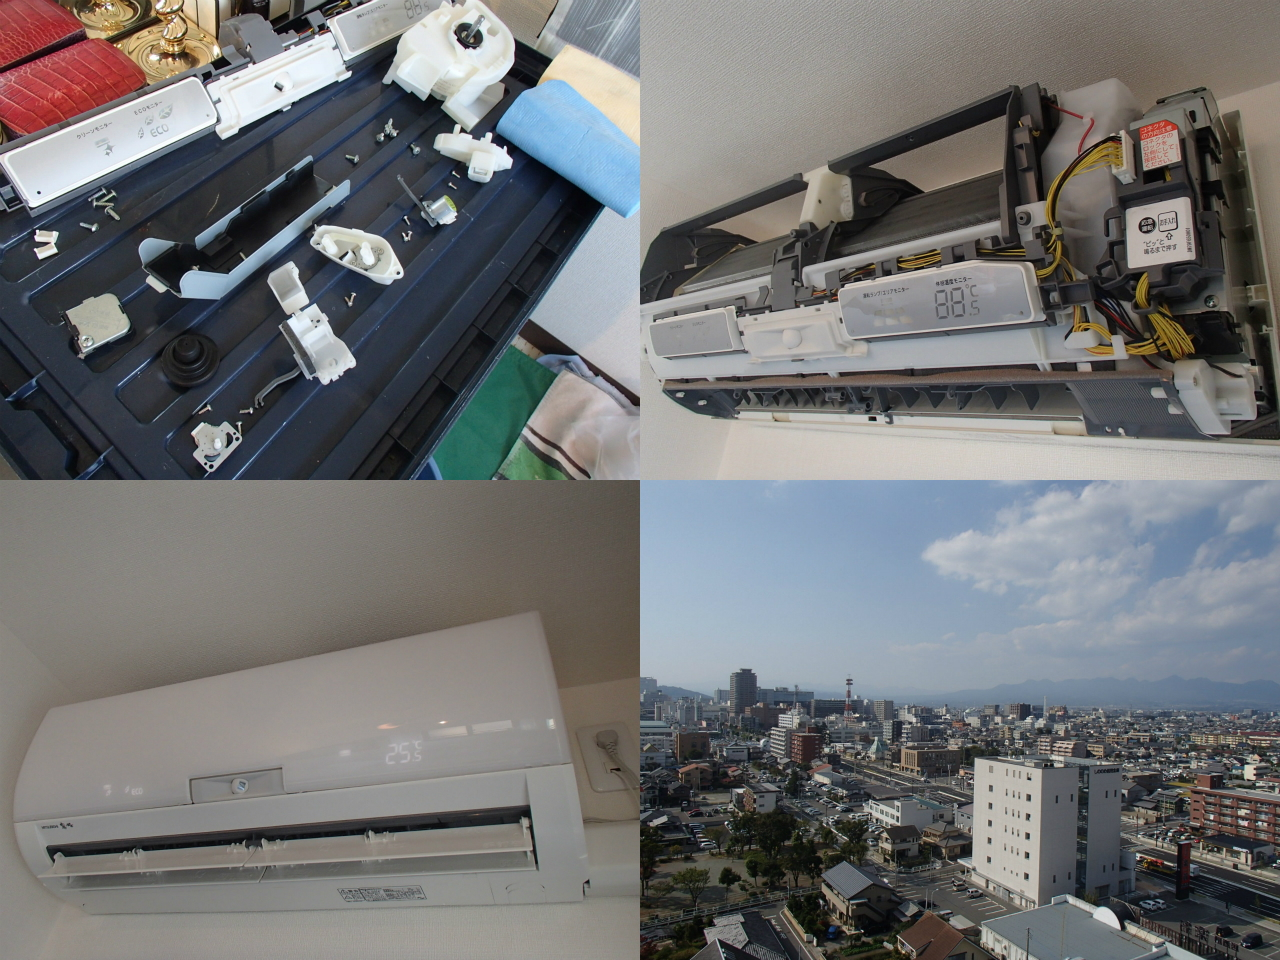 http://ajras.net/images/121015-aircon4.jpg